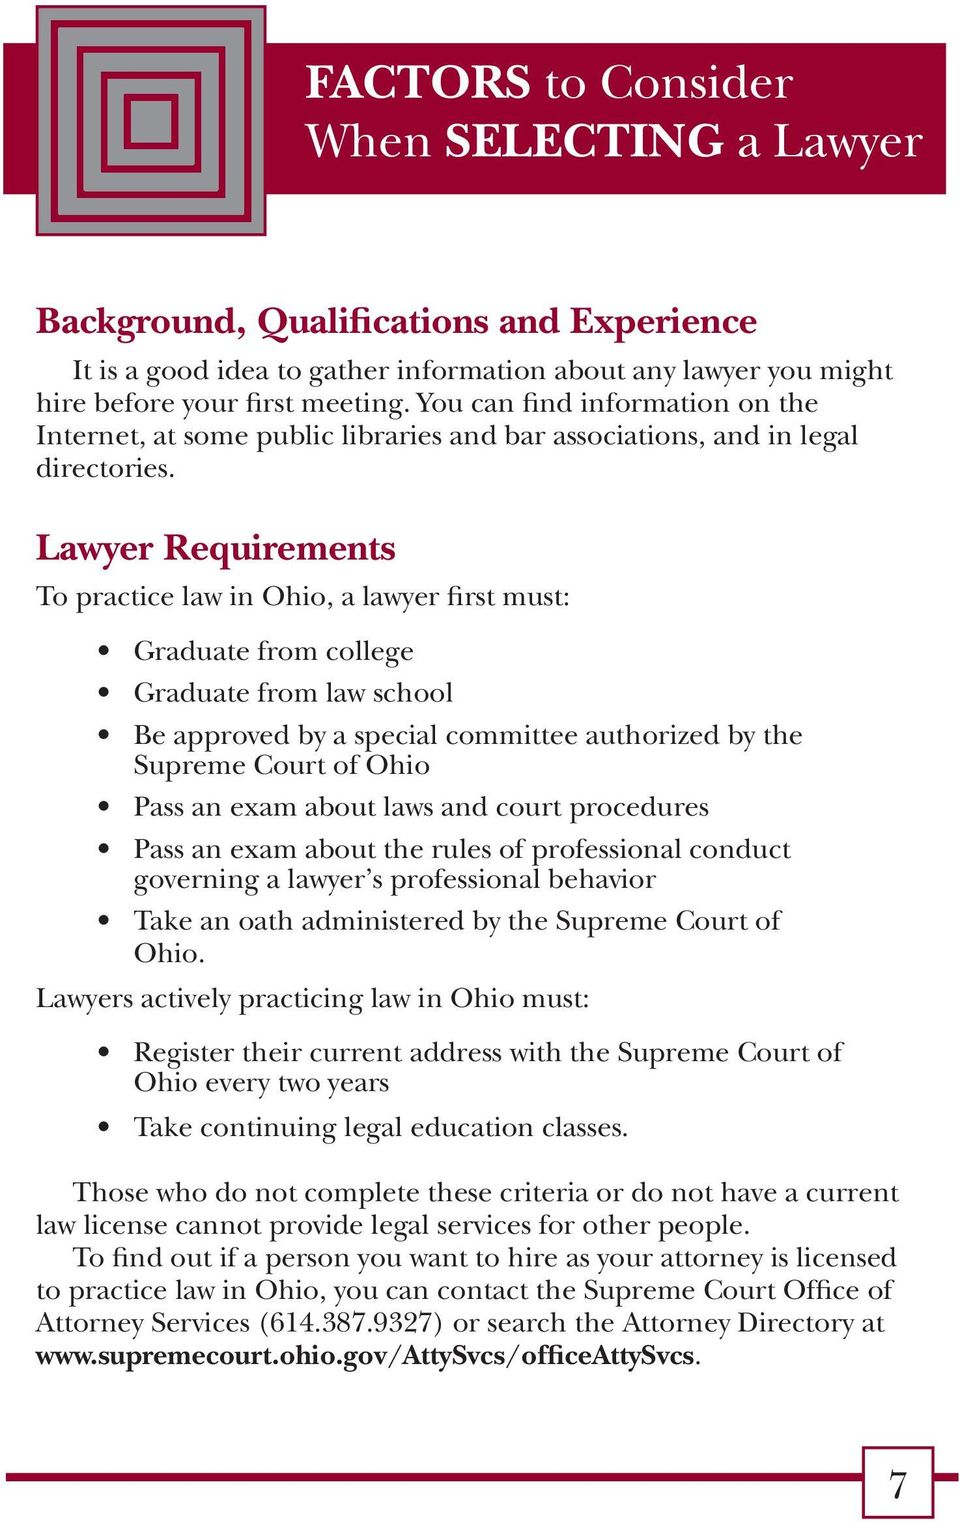 Lawyer Requirements To practice law in Ohio, a lawyer first must: Graduate from college Graduate from law school Be approved by a special committee authorized by the Supreme Court of Ohio Pass an